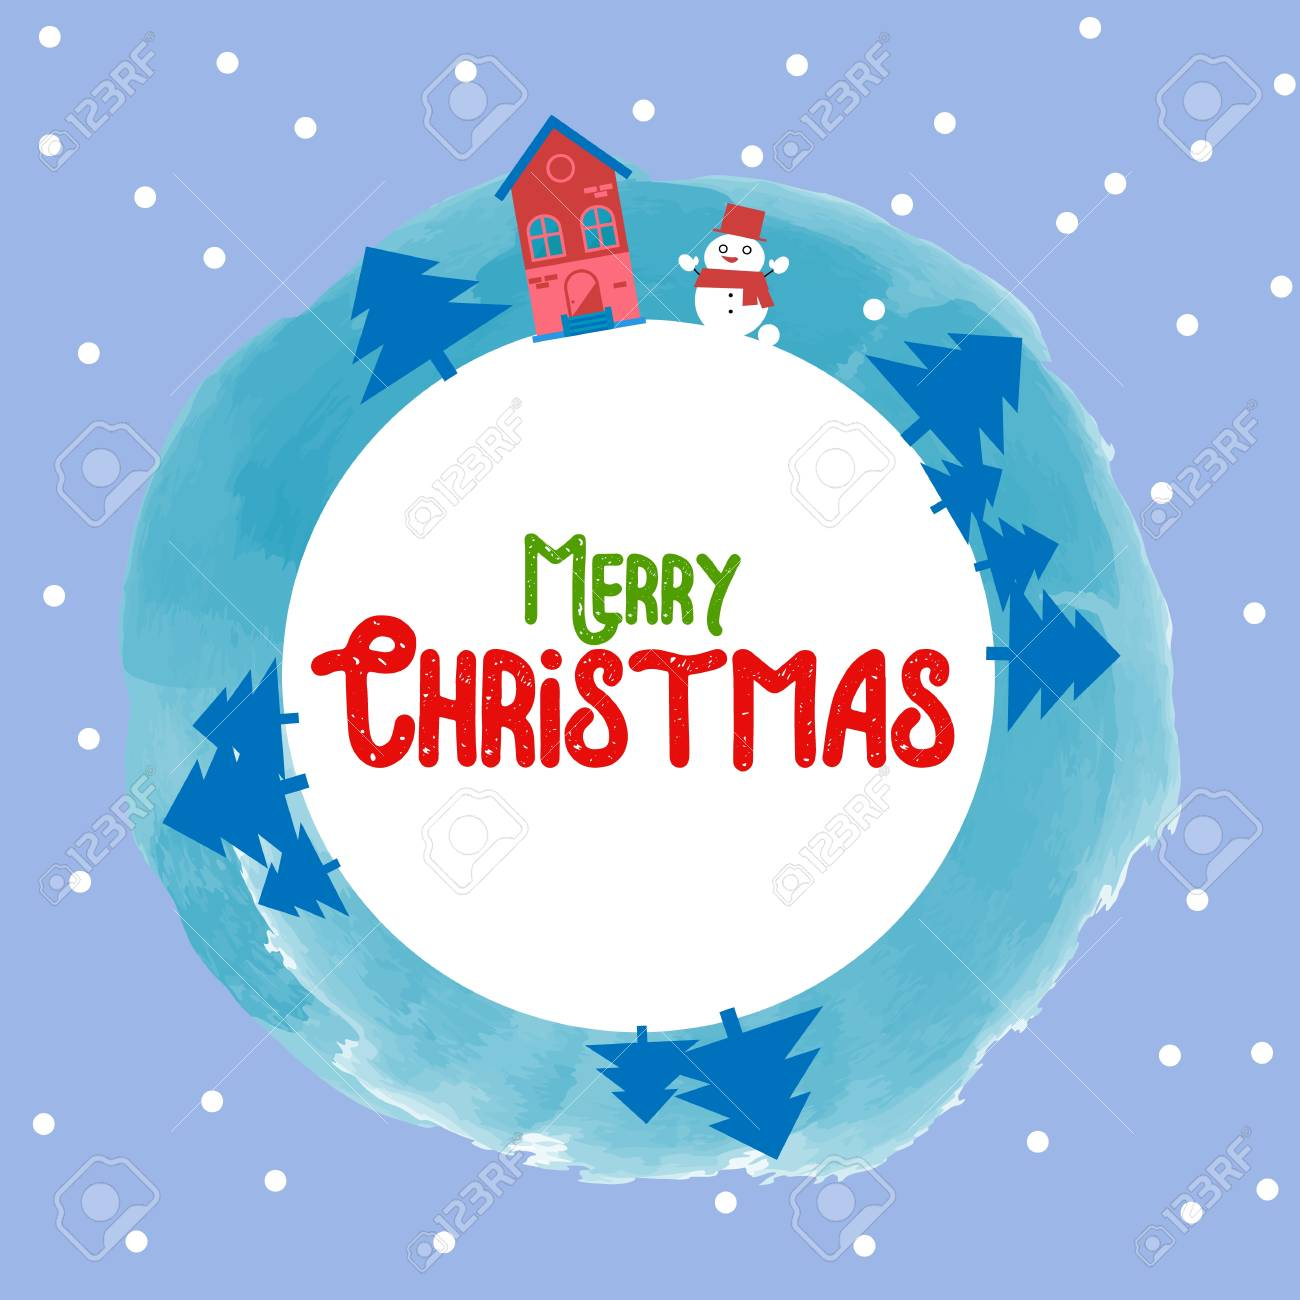 Merry Christmas Happy New Year 2018 Winter Greeting Card Background With Cute Snowman And Fir Trees